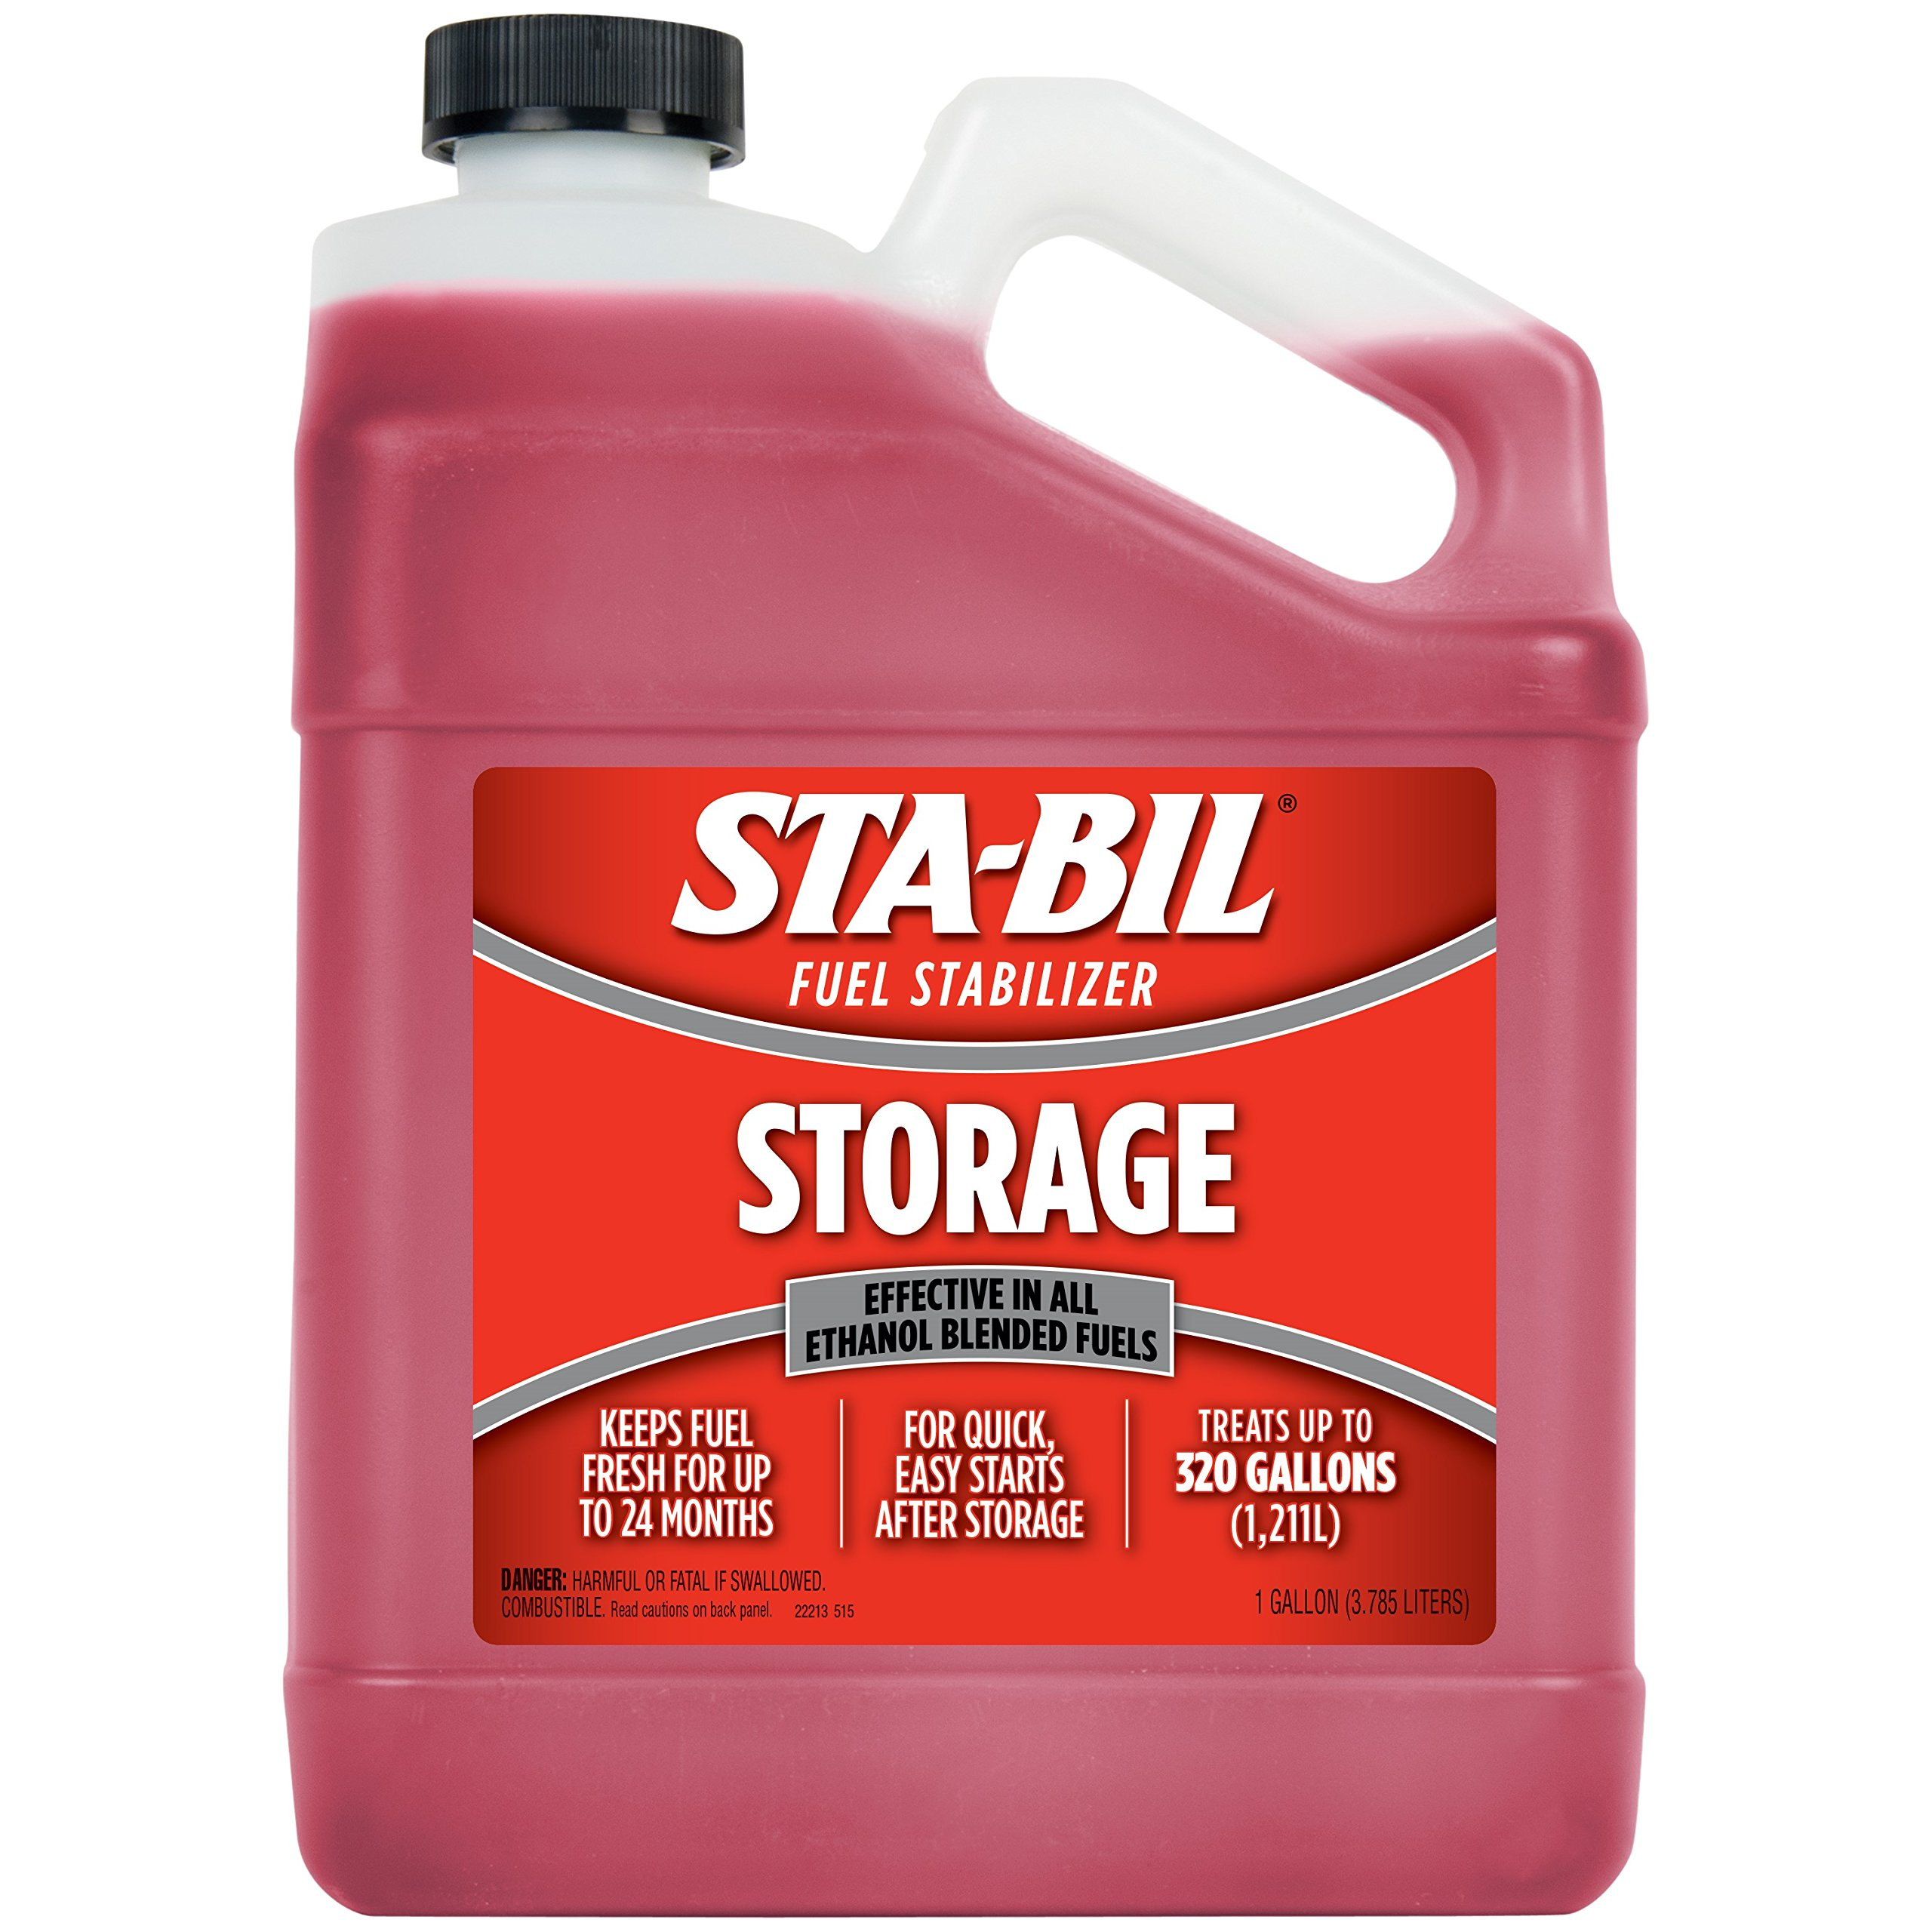 STA-BIL 22213 Fuel Stabilizer, 1 Gallon, Red